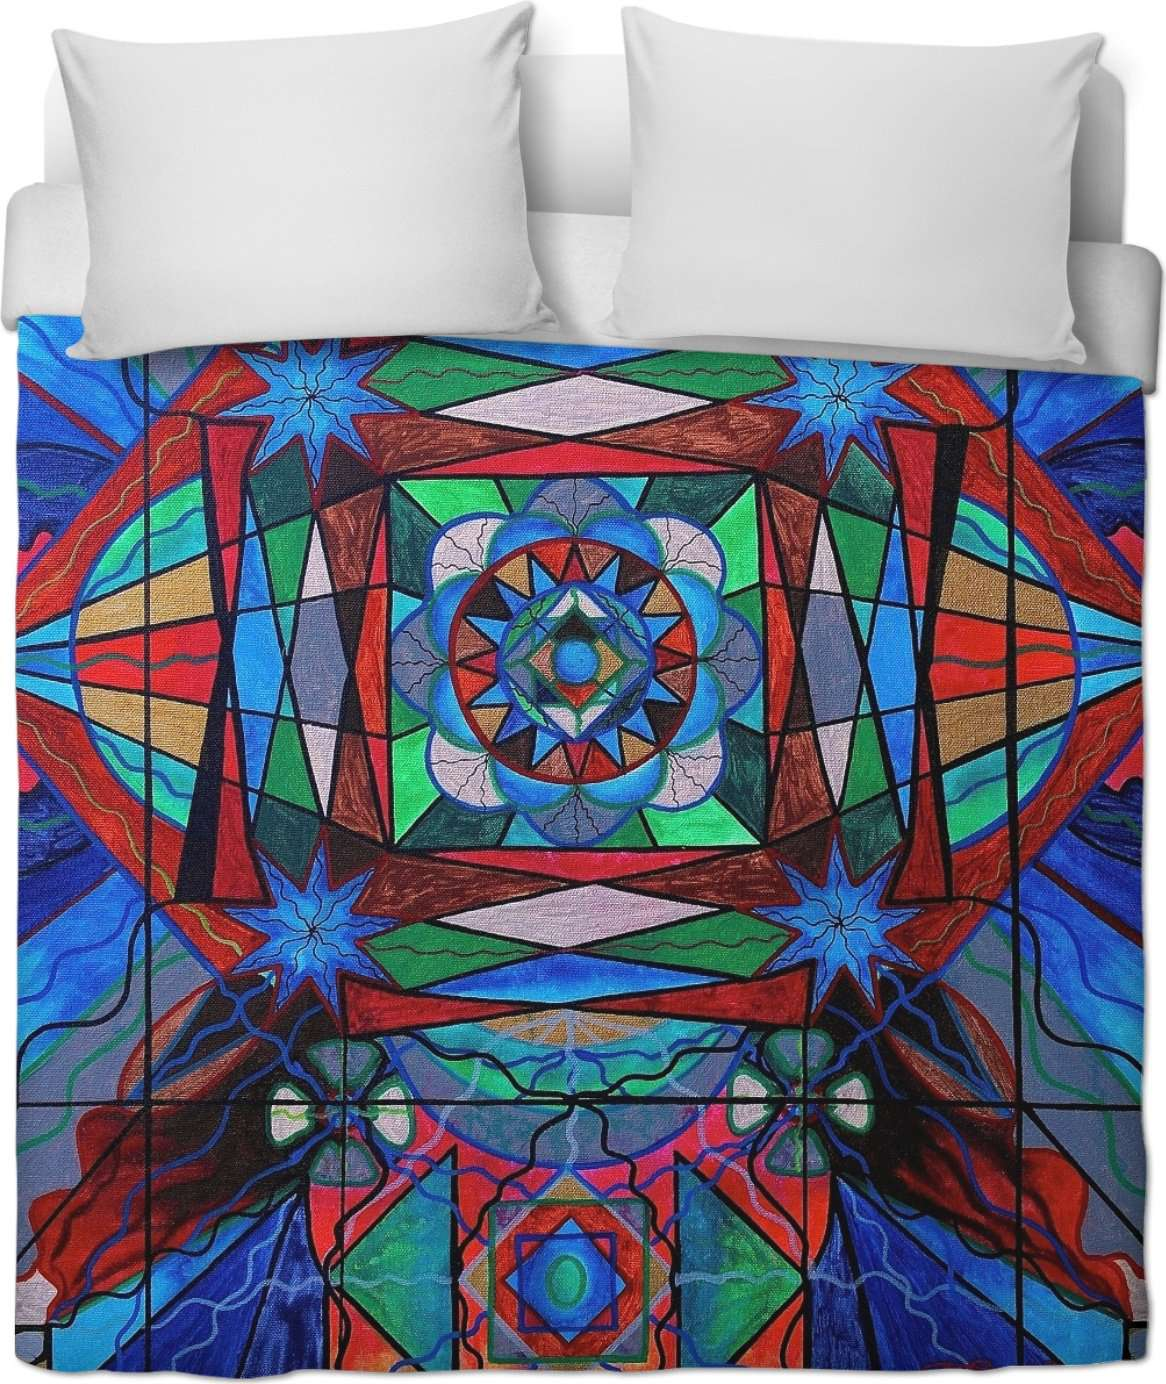 Sense of Security - Duvet Cover